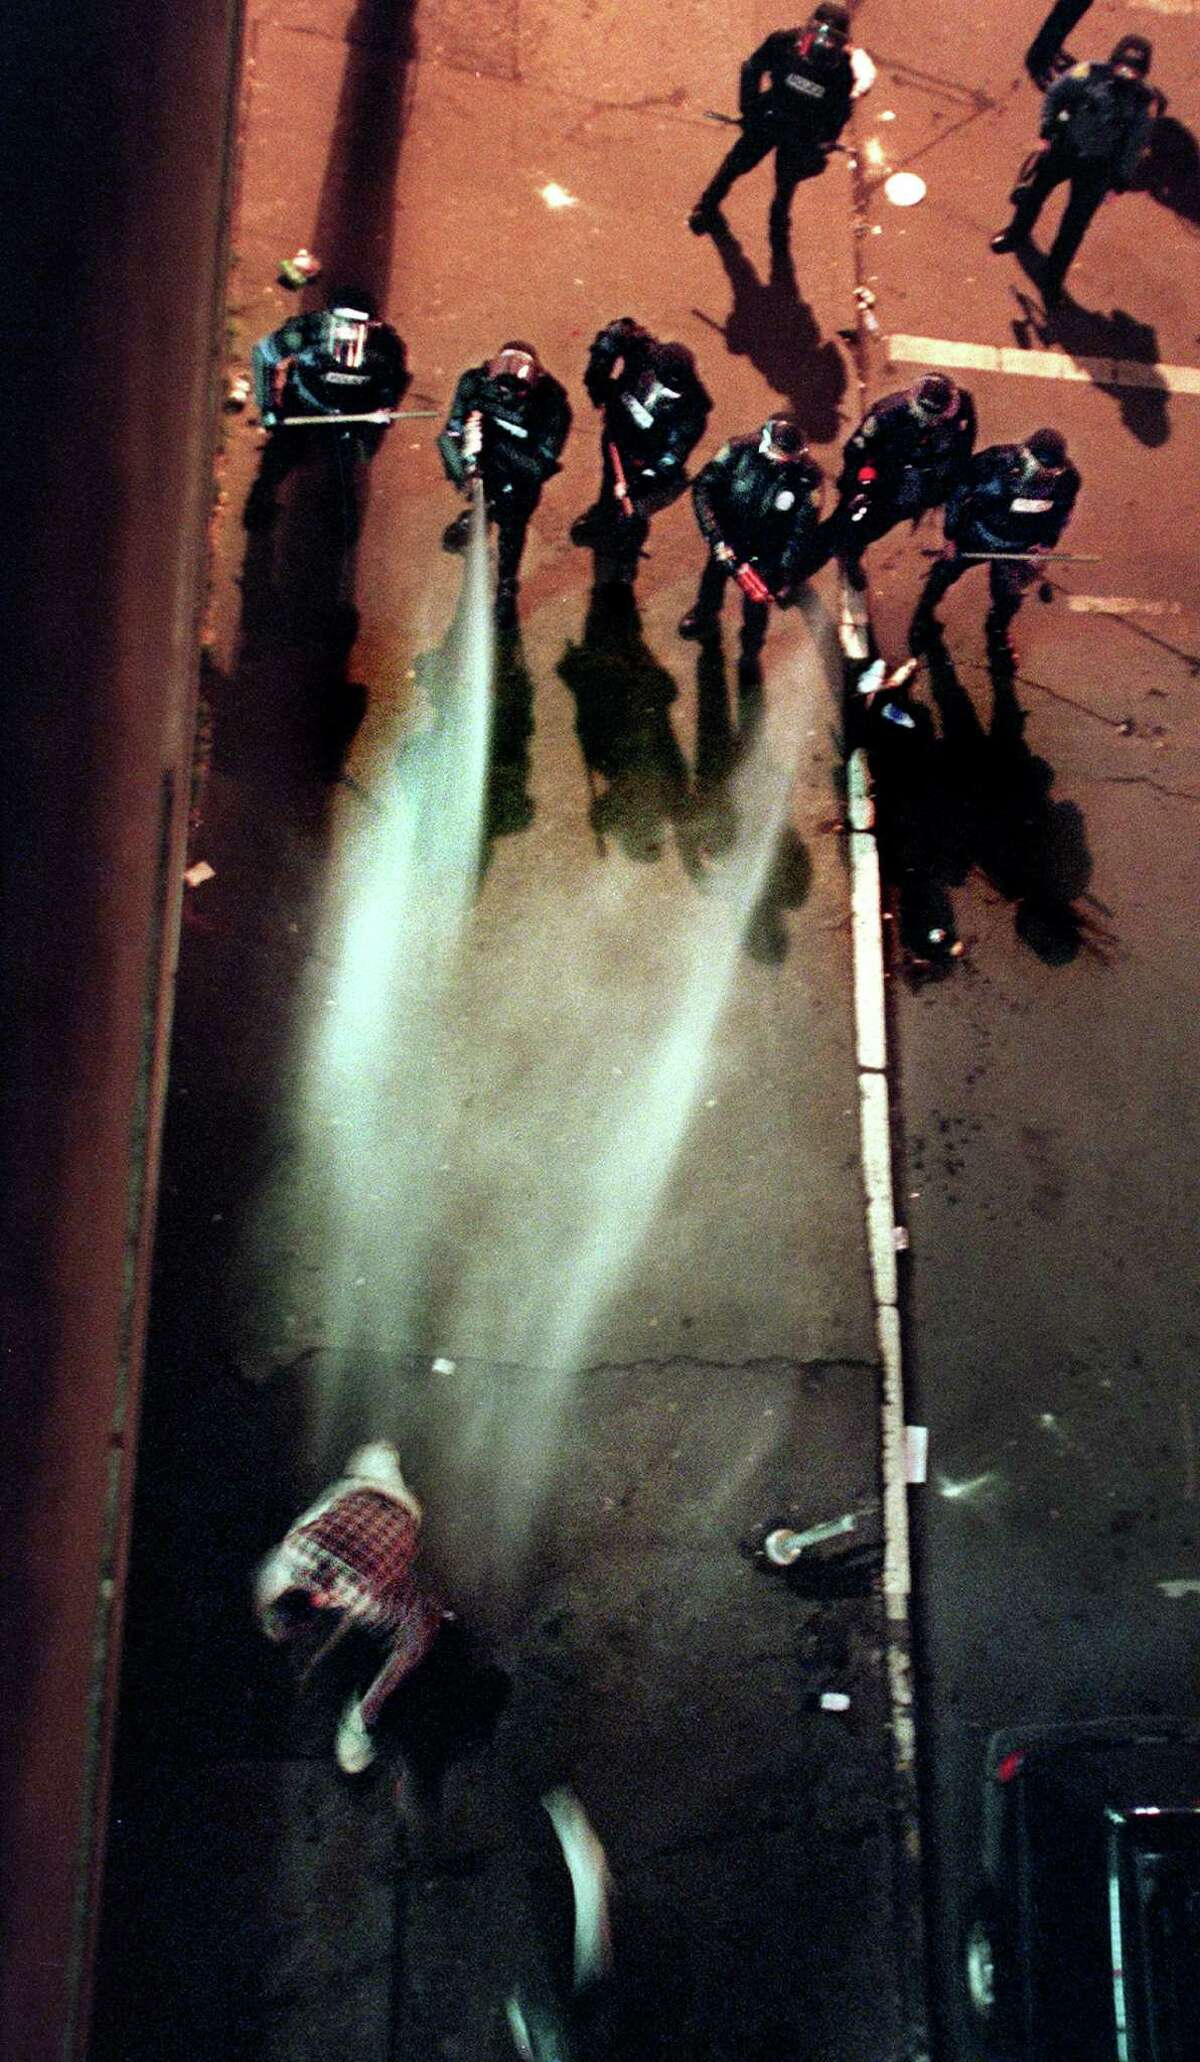 Seattle Police officers gas a man on James street in Seattle while clearing the streets after a Mardi Gras celebration which turned into a protest in Pioneer Square early the morning of Feb. 25, 2001.